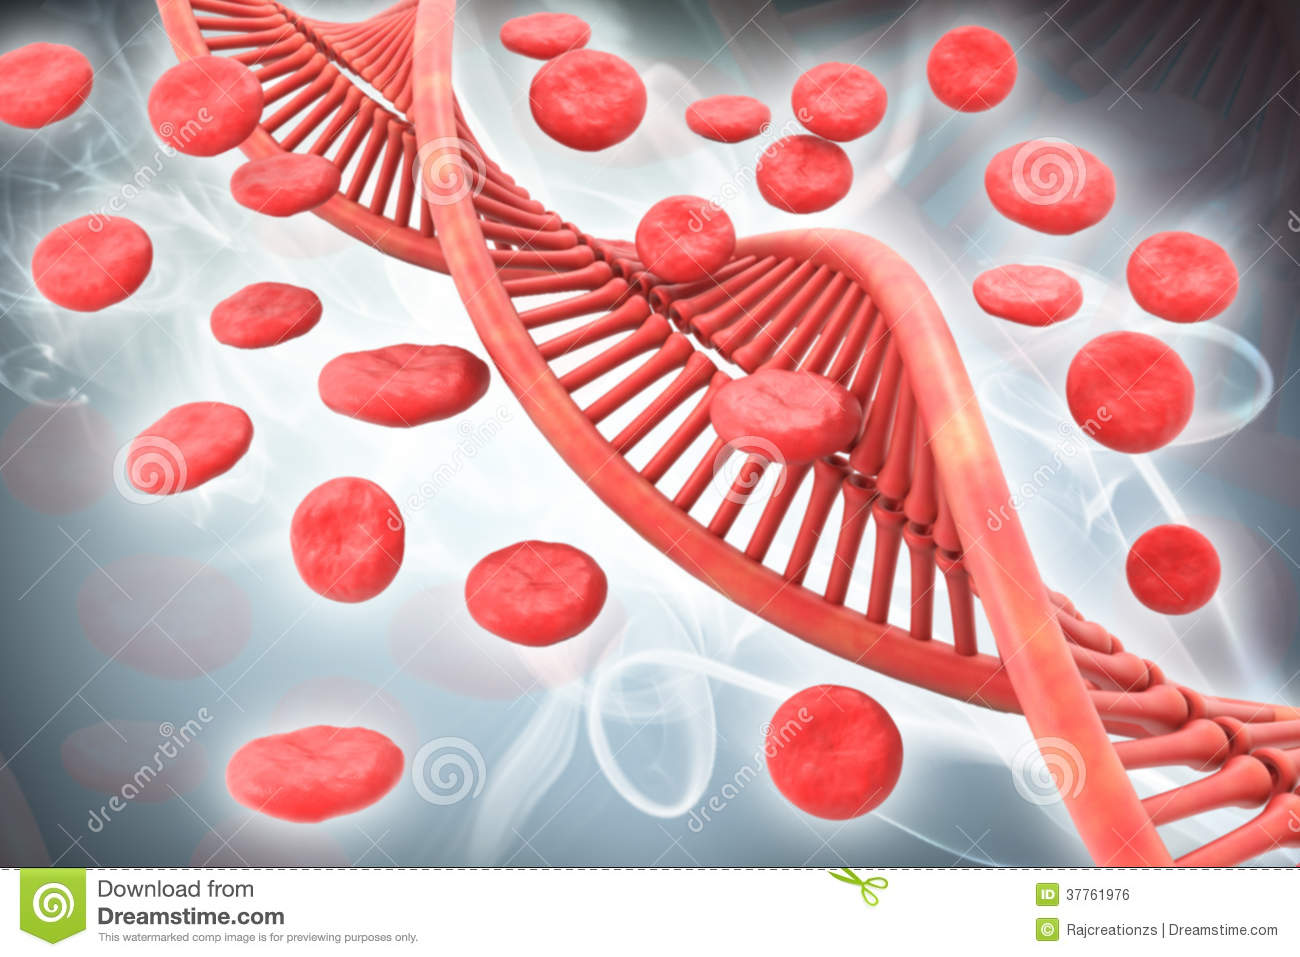 Dna And Blood Cells Royalty Free Stock Image